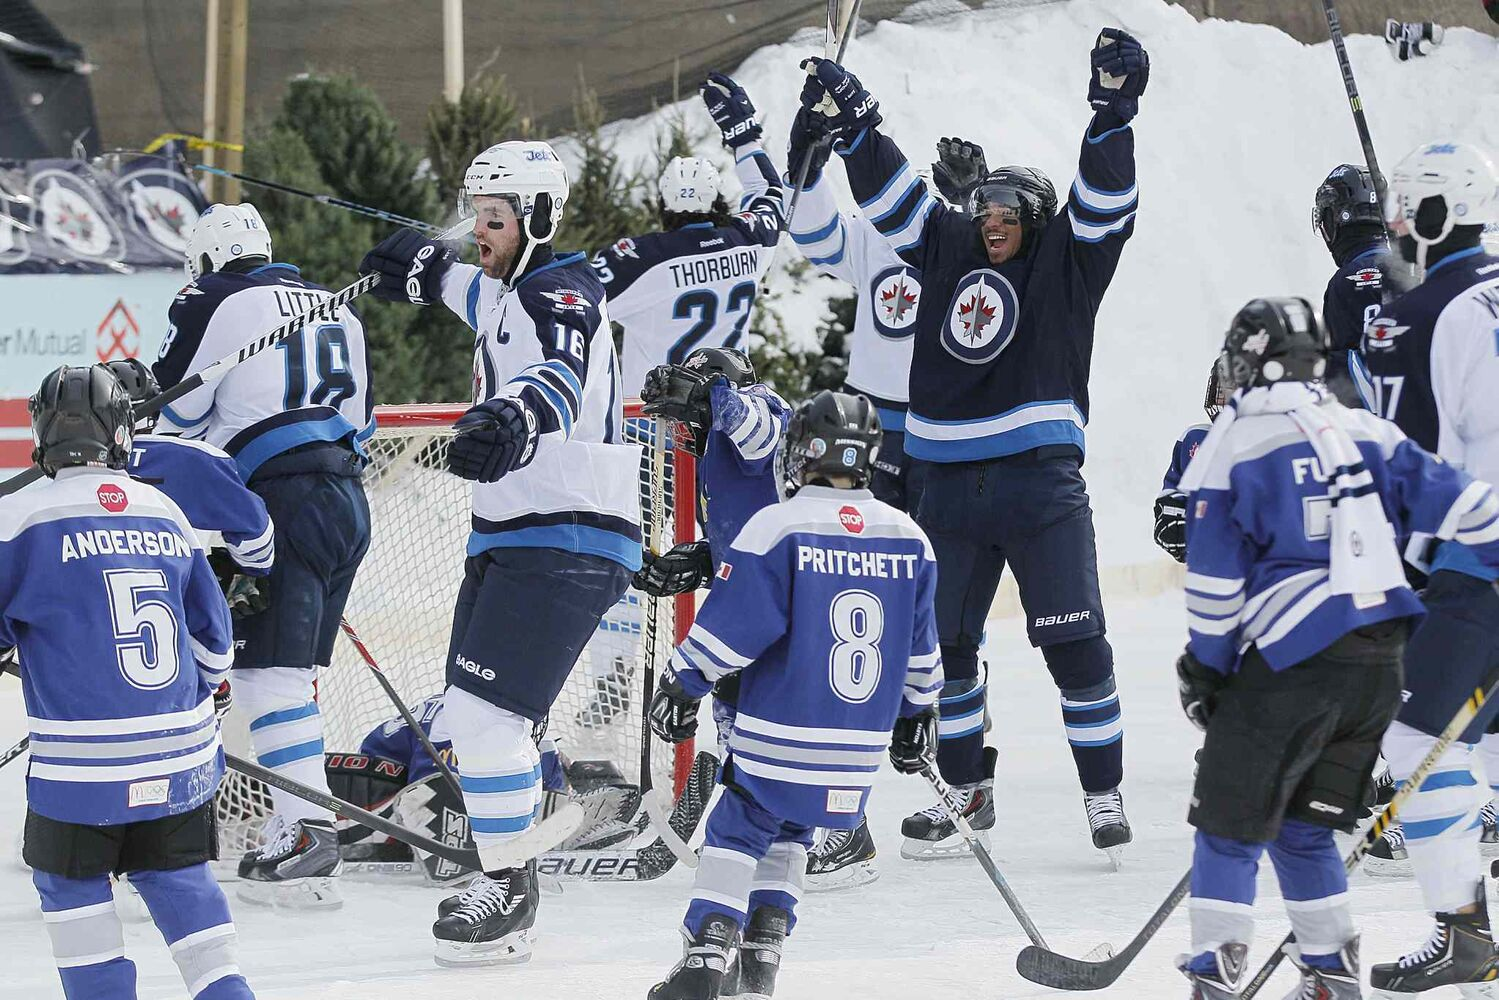 Jets sniper Evander Kane celebrates after scoring on the Portage Atom A team during the Jets' outdoor practice at The Forks on Sunday. (John Woods / Winnipeg Free Press)